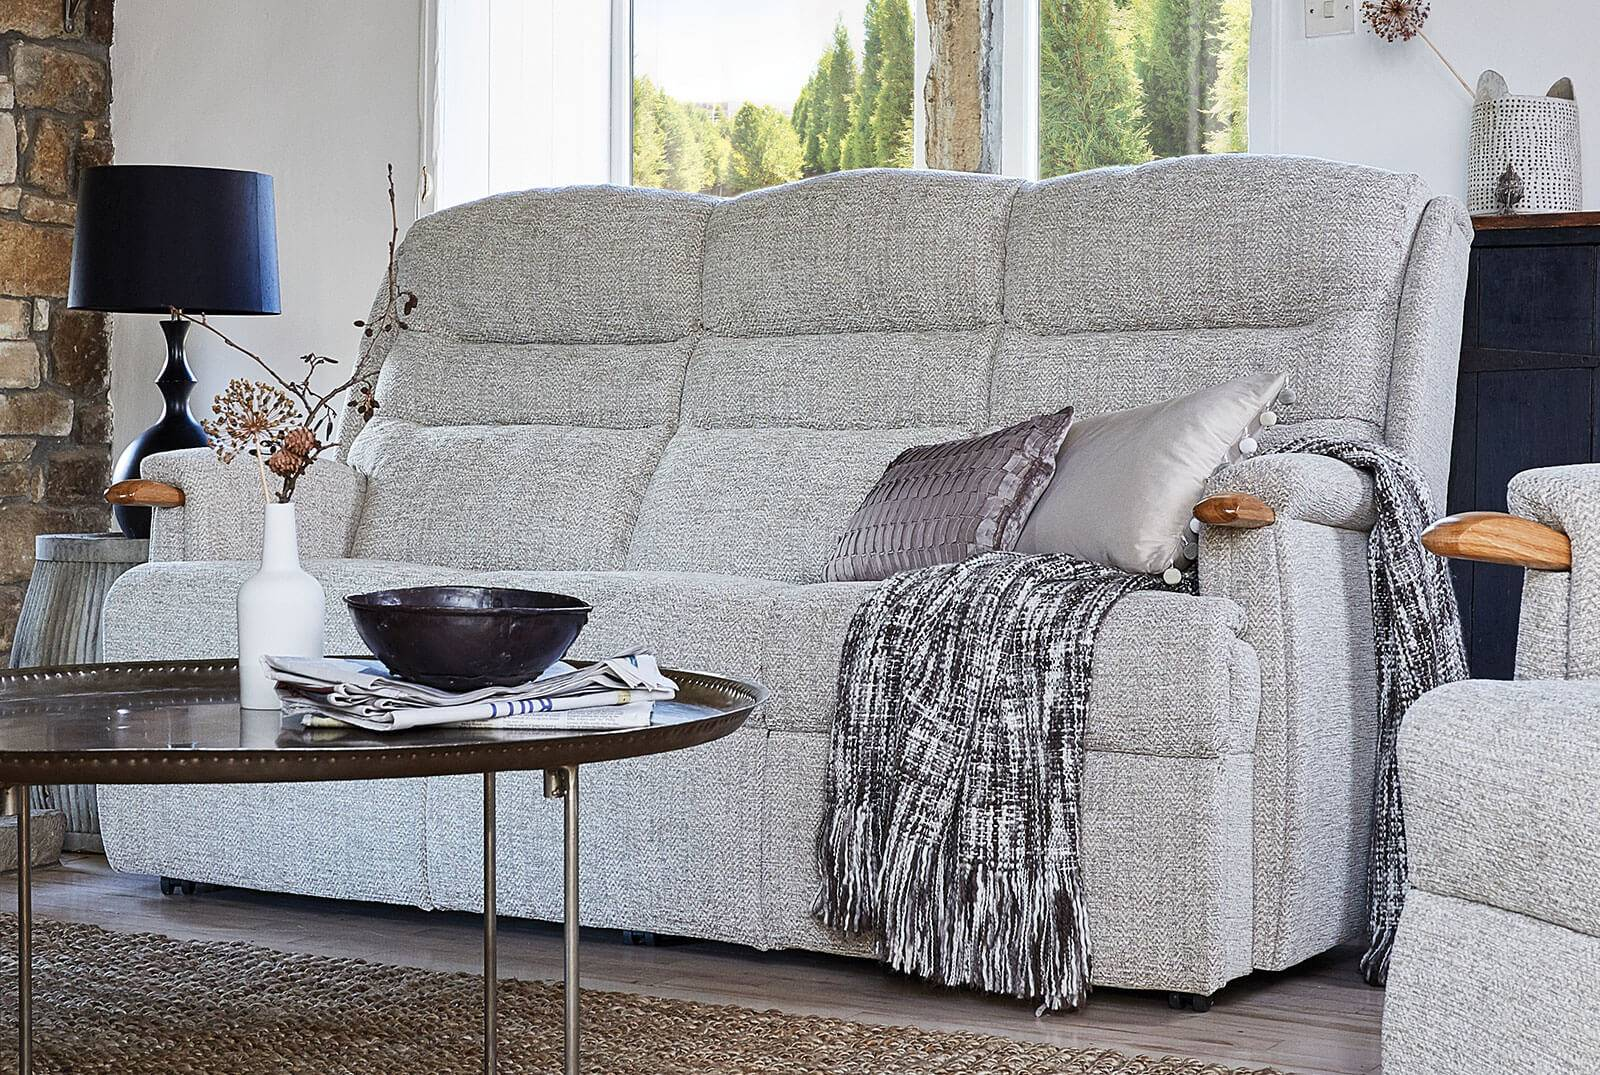 Ripley Three-Seater Comfort Sofa with Knuckles in Canillo Alpine